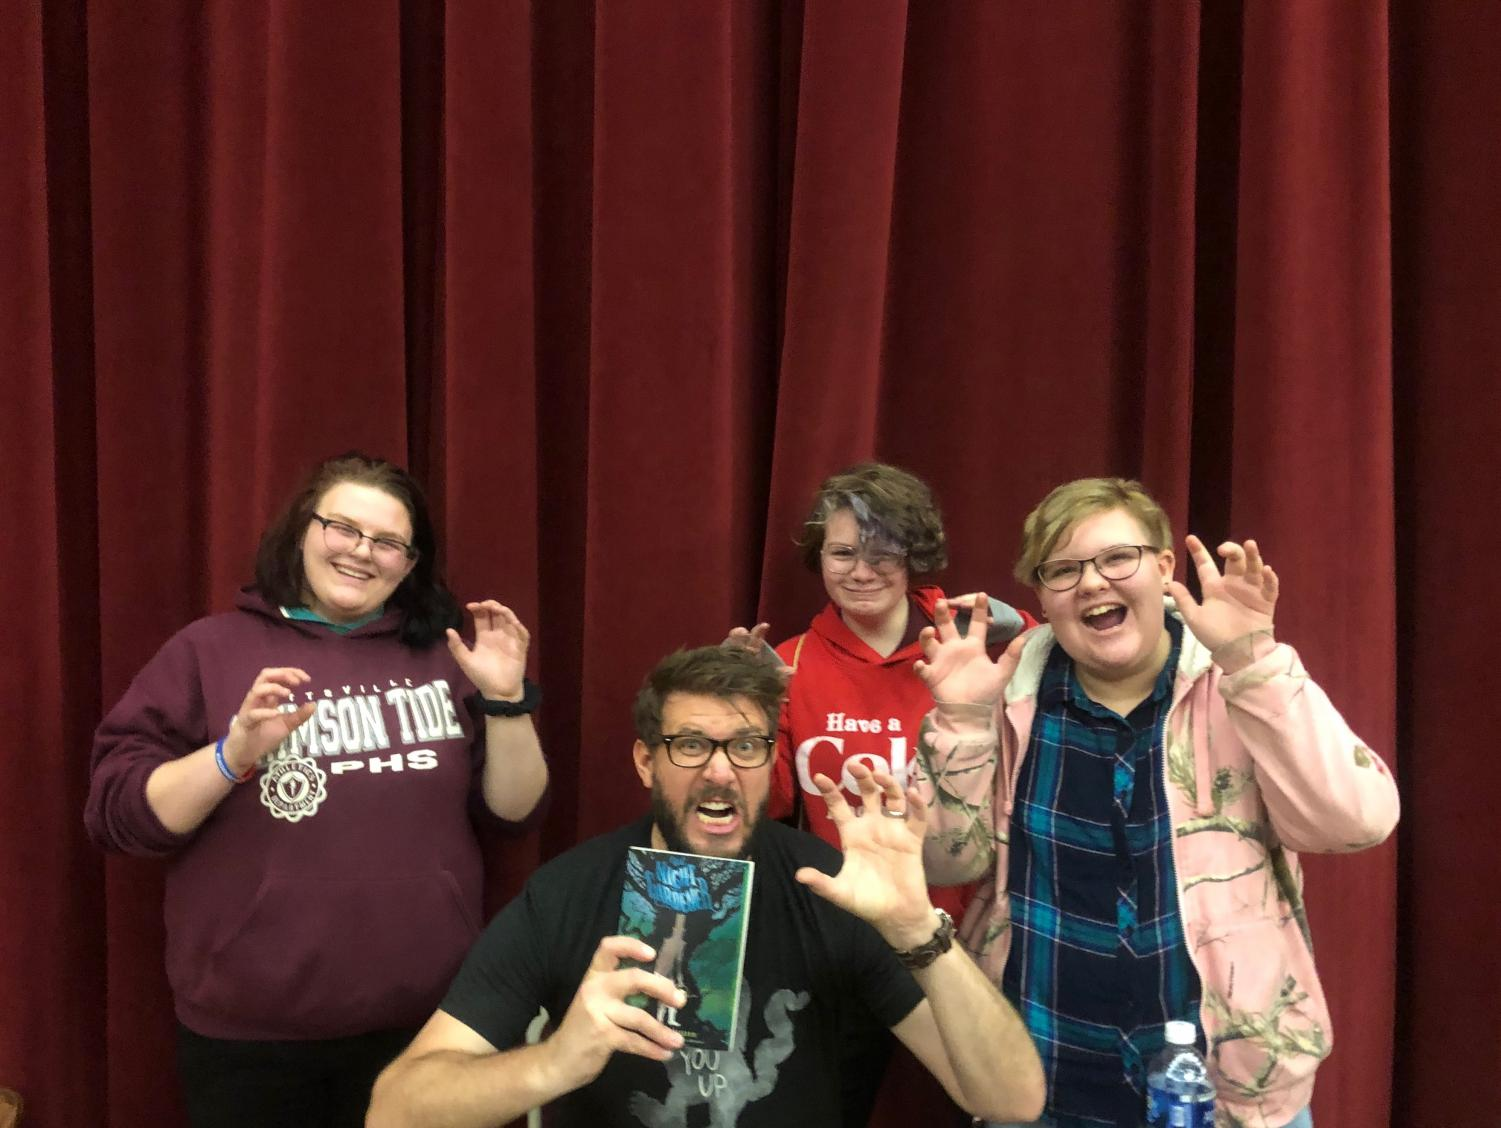 POSE - 8th graders Madison Auman, Jaden Ebert, and Catherine Lubinsky pose with author Jonathan Auxier at Teen Library Day at Kutztown University.